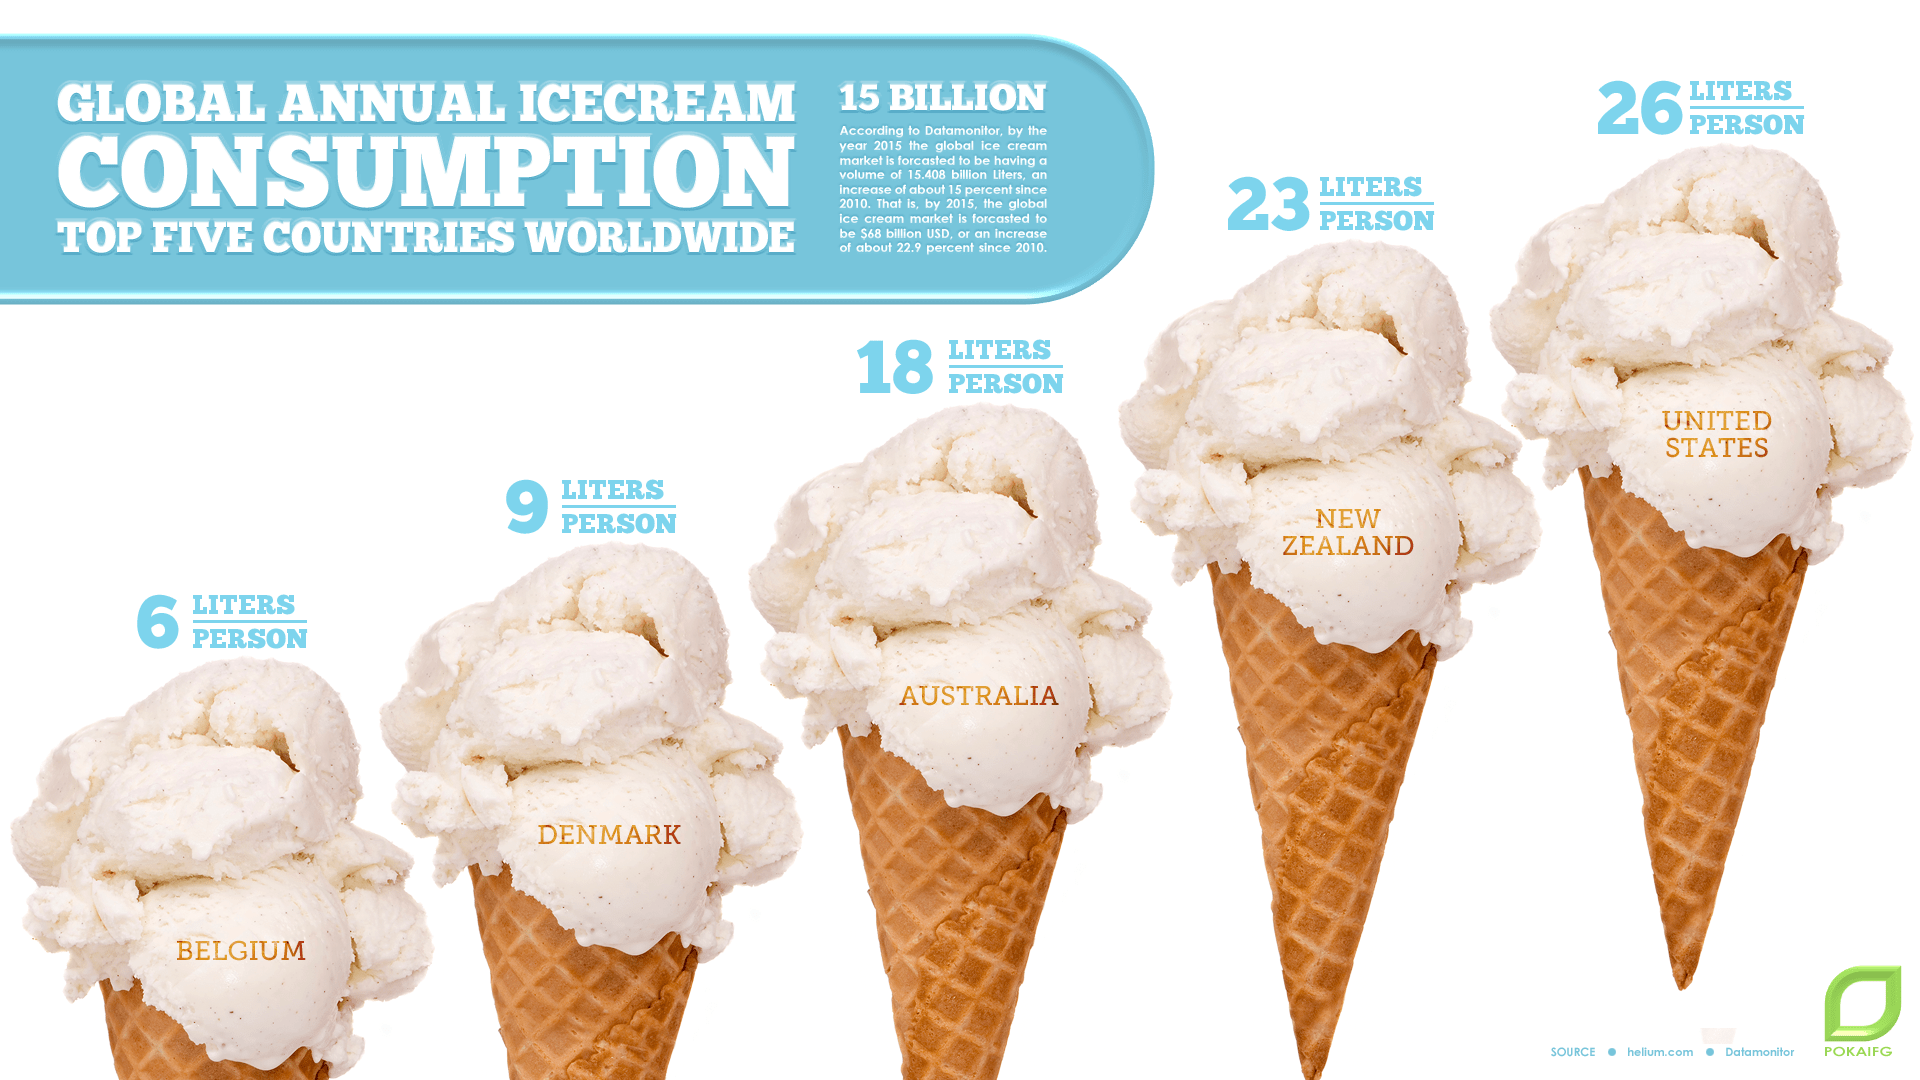 global-annual-icecream-consumption-top-five-countries_51855ddd3ba64